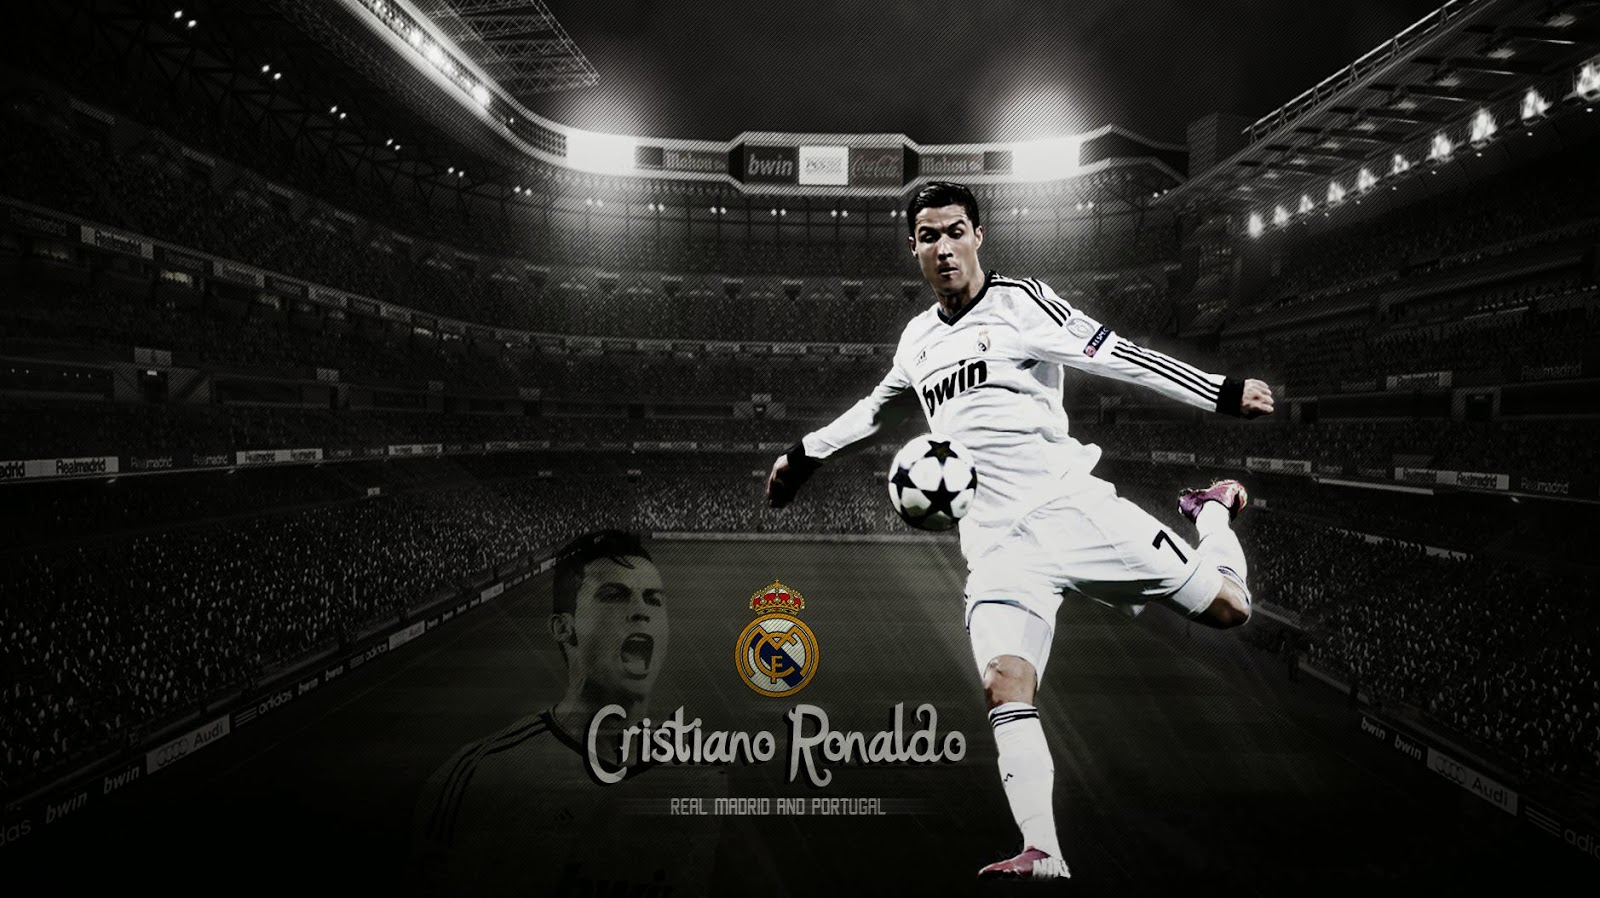 Cr7 Wallpaper Hd: CR7 HD Wallpapers 2014